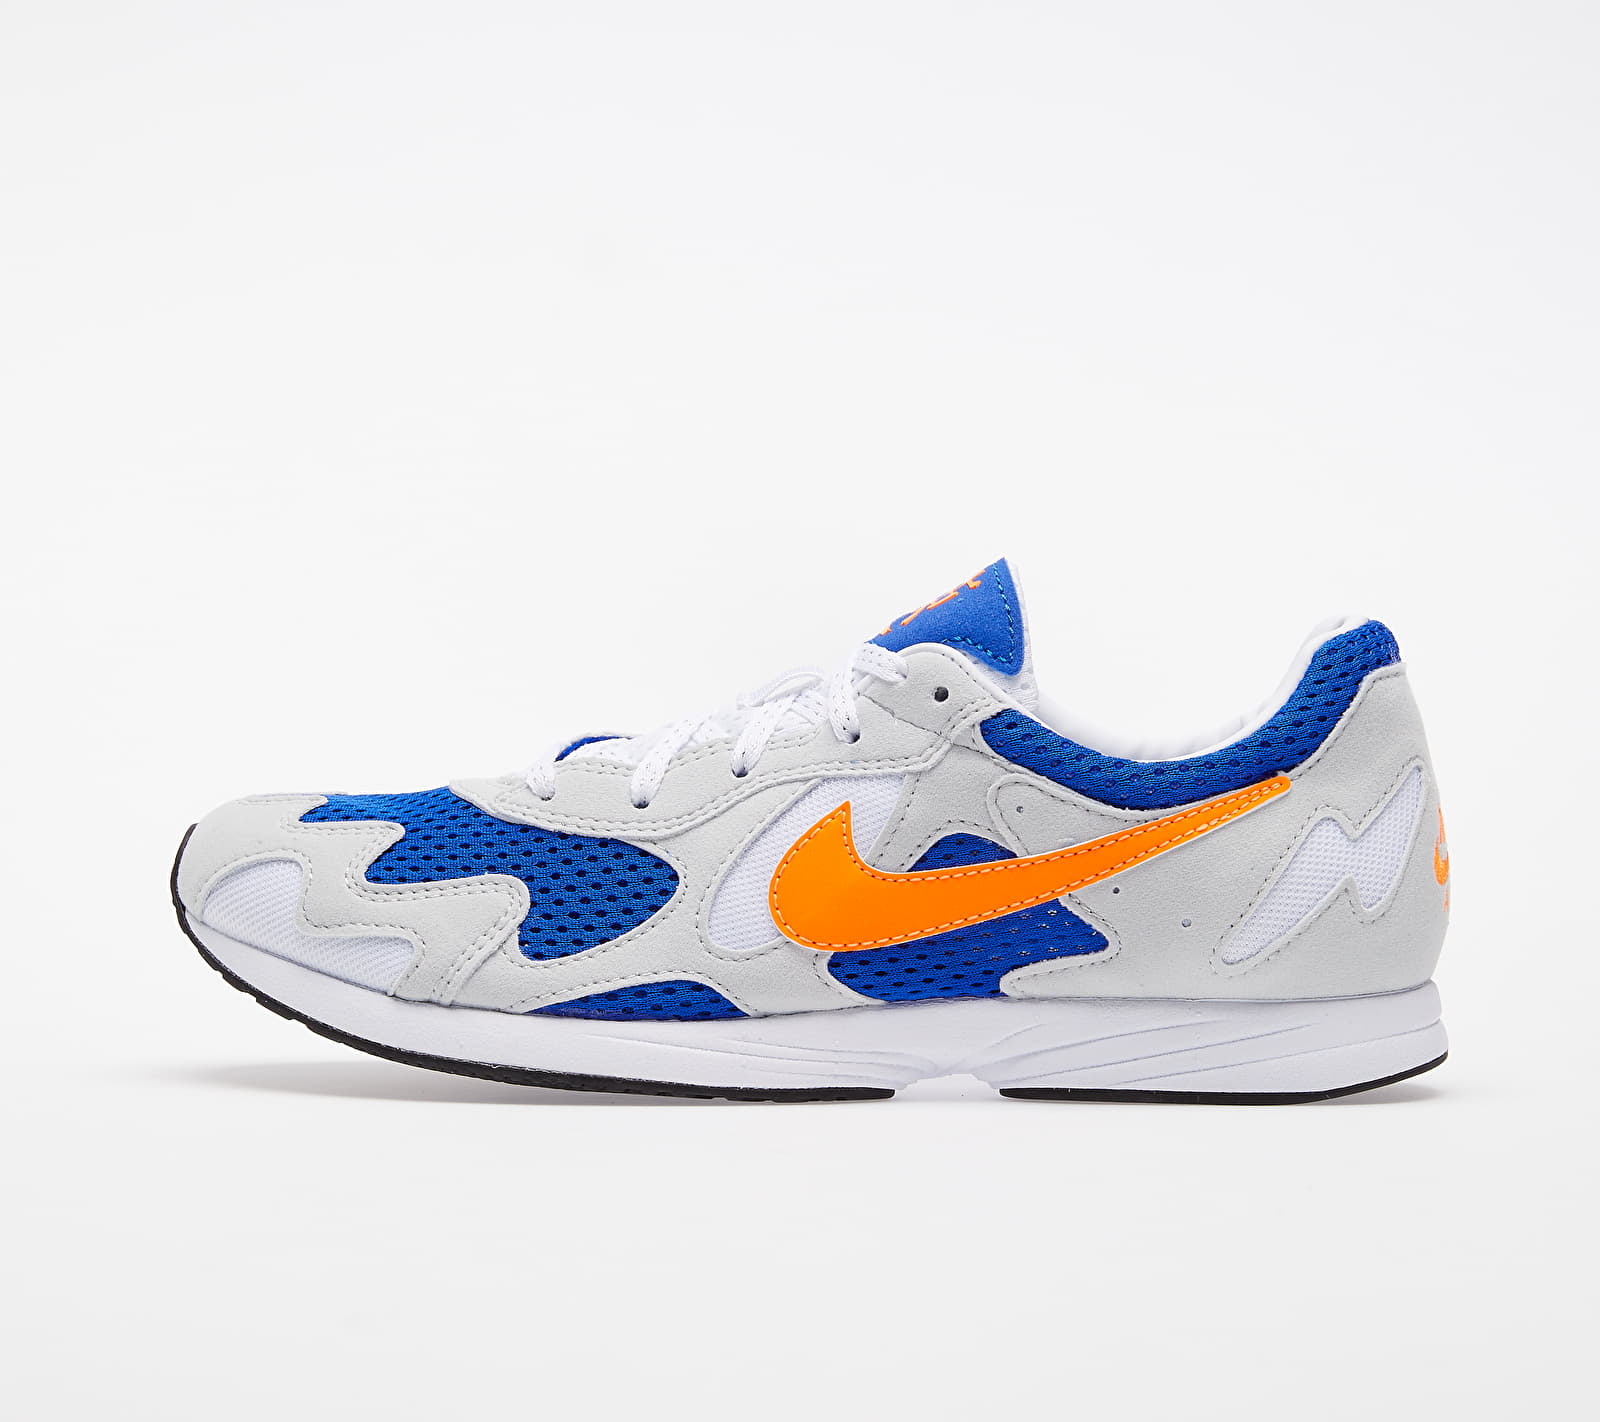 Nike Air Streak Lite White/ Total Orange-Racer Blue-Black EUR 45.5